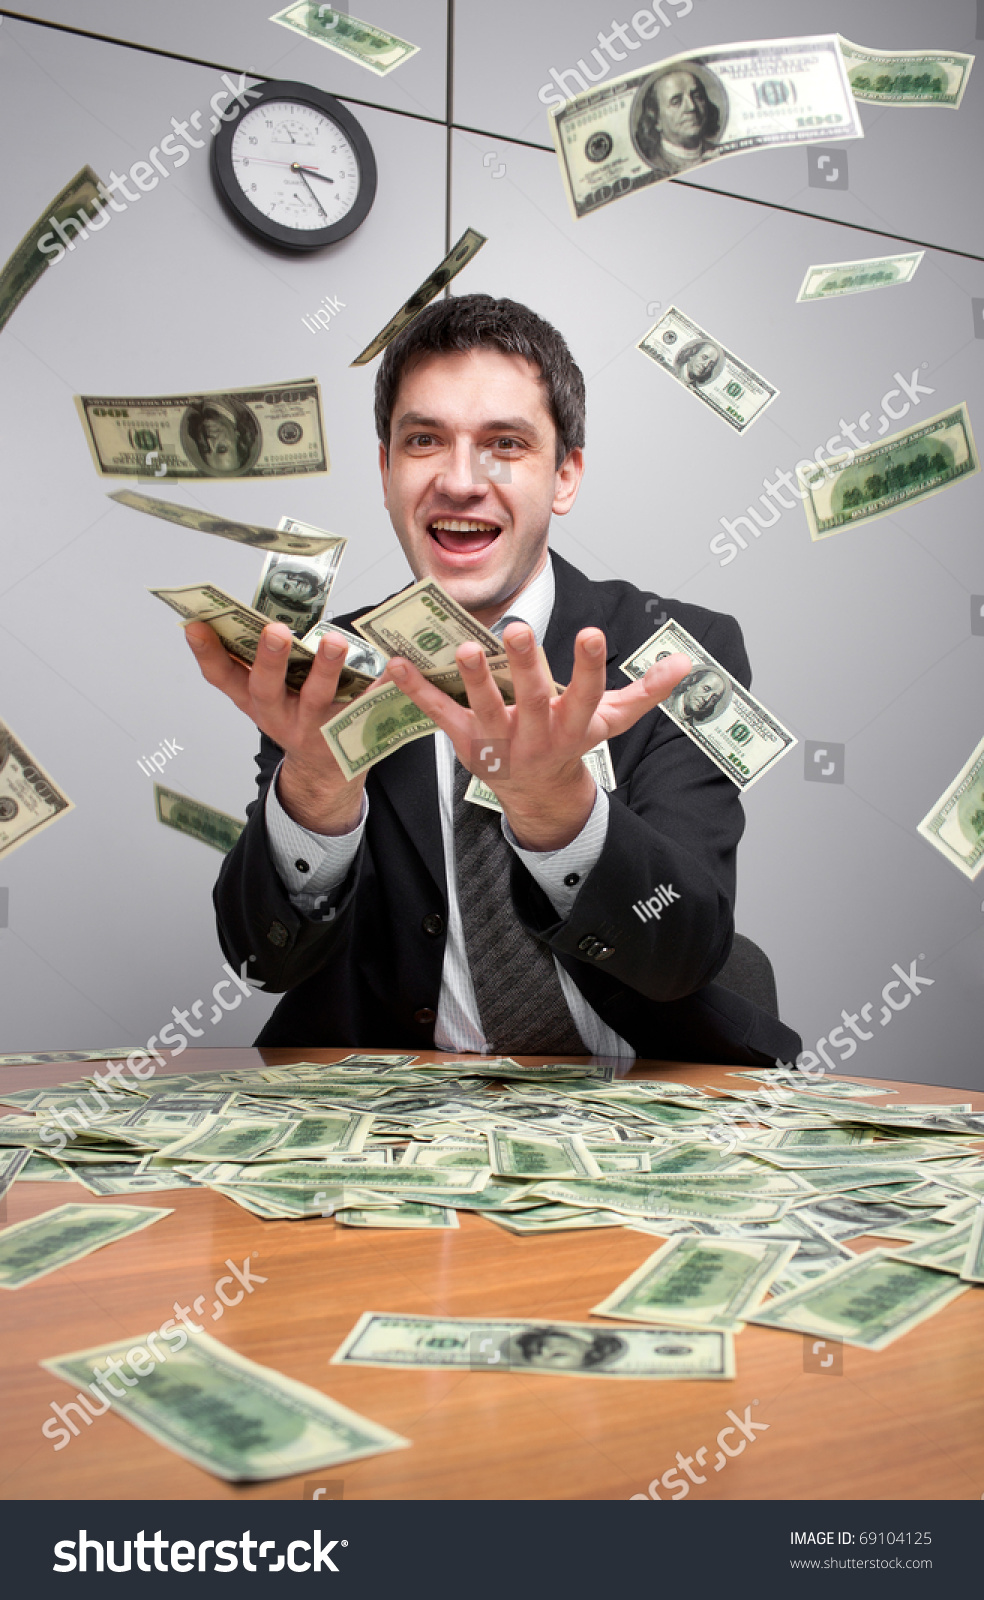 young businessman office catch money air stock photo  young businessman in office catch a lot of money in the air